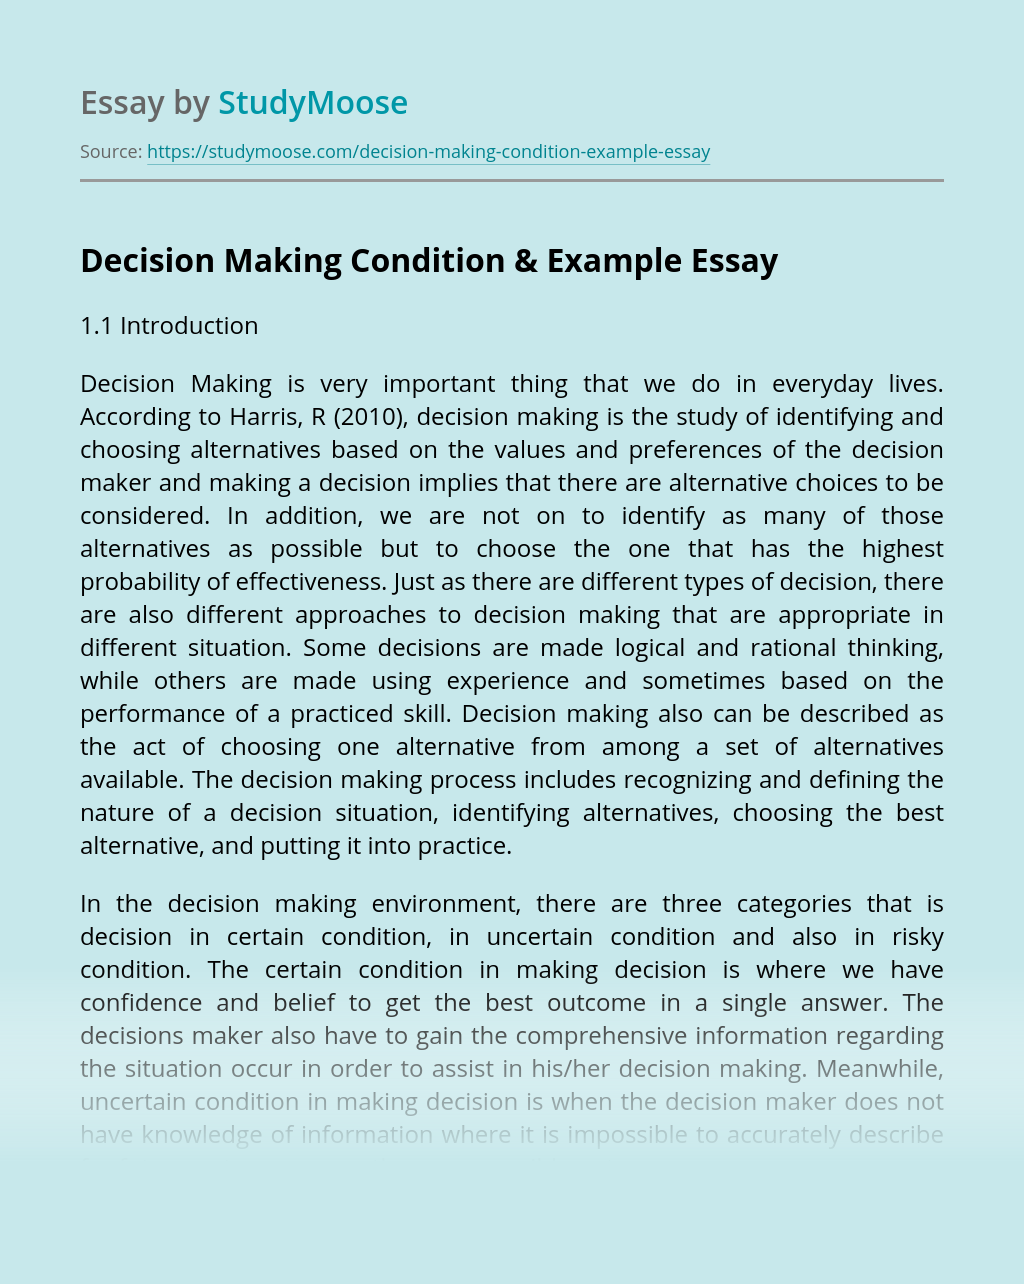 Decision Making Condition & Example